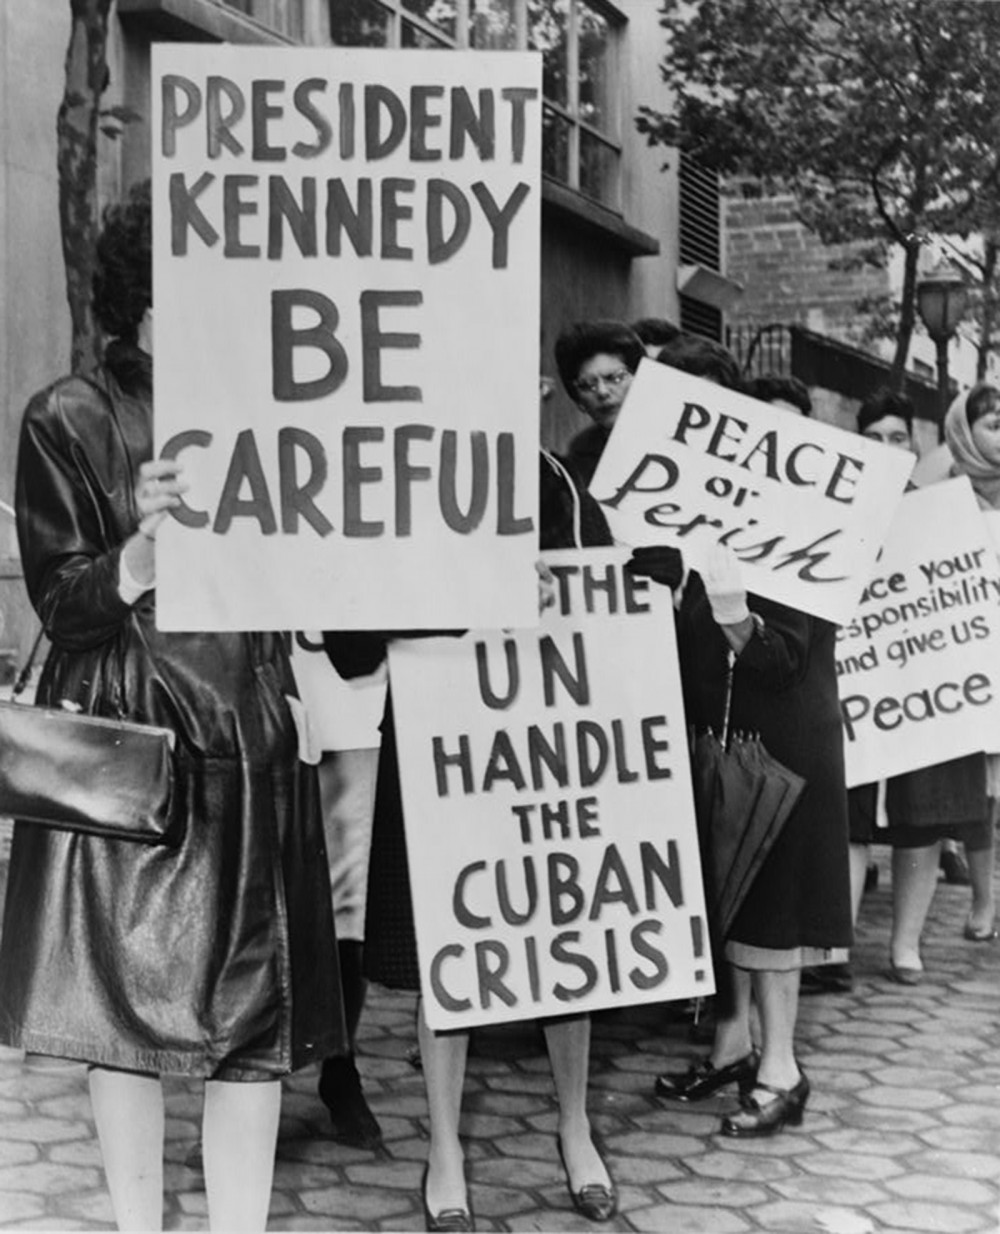 A gathering of women holding signs asking for peace and urging caution.